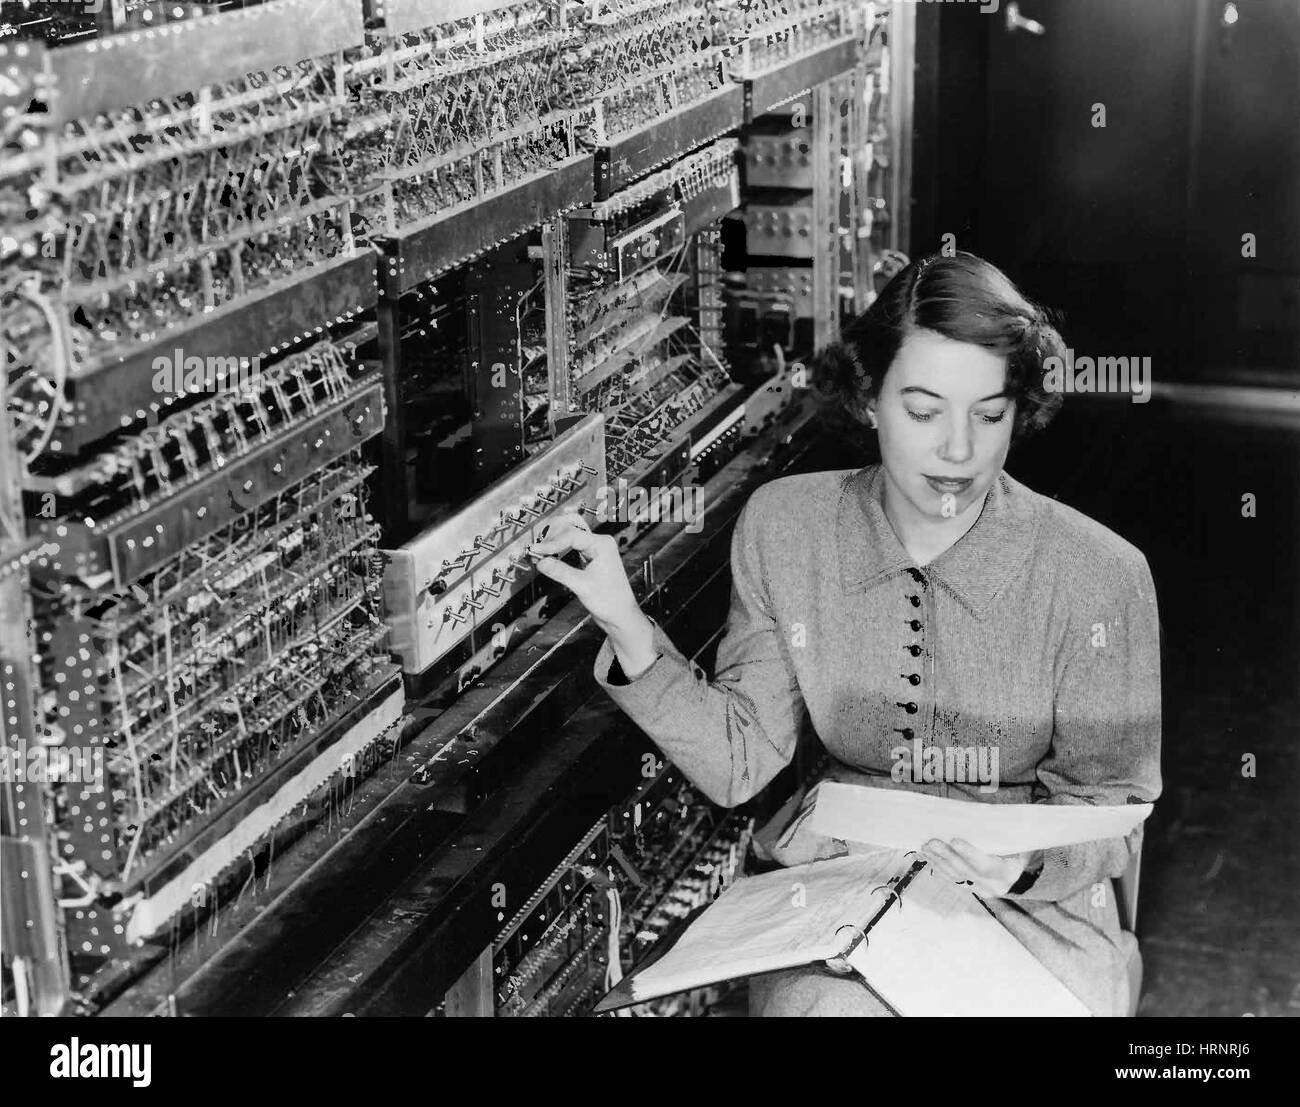 Jean F. Hall with AVIDAC, 1953 - Stock Image